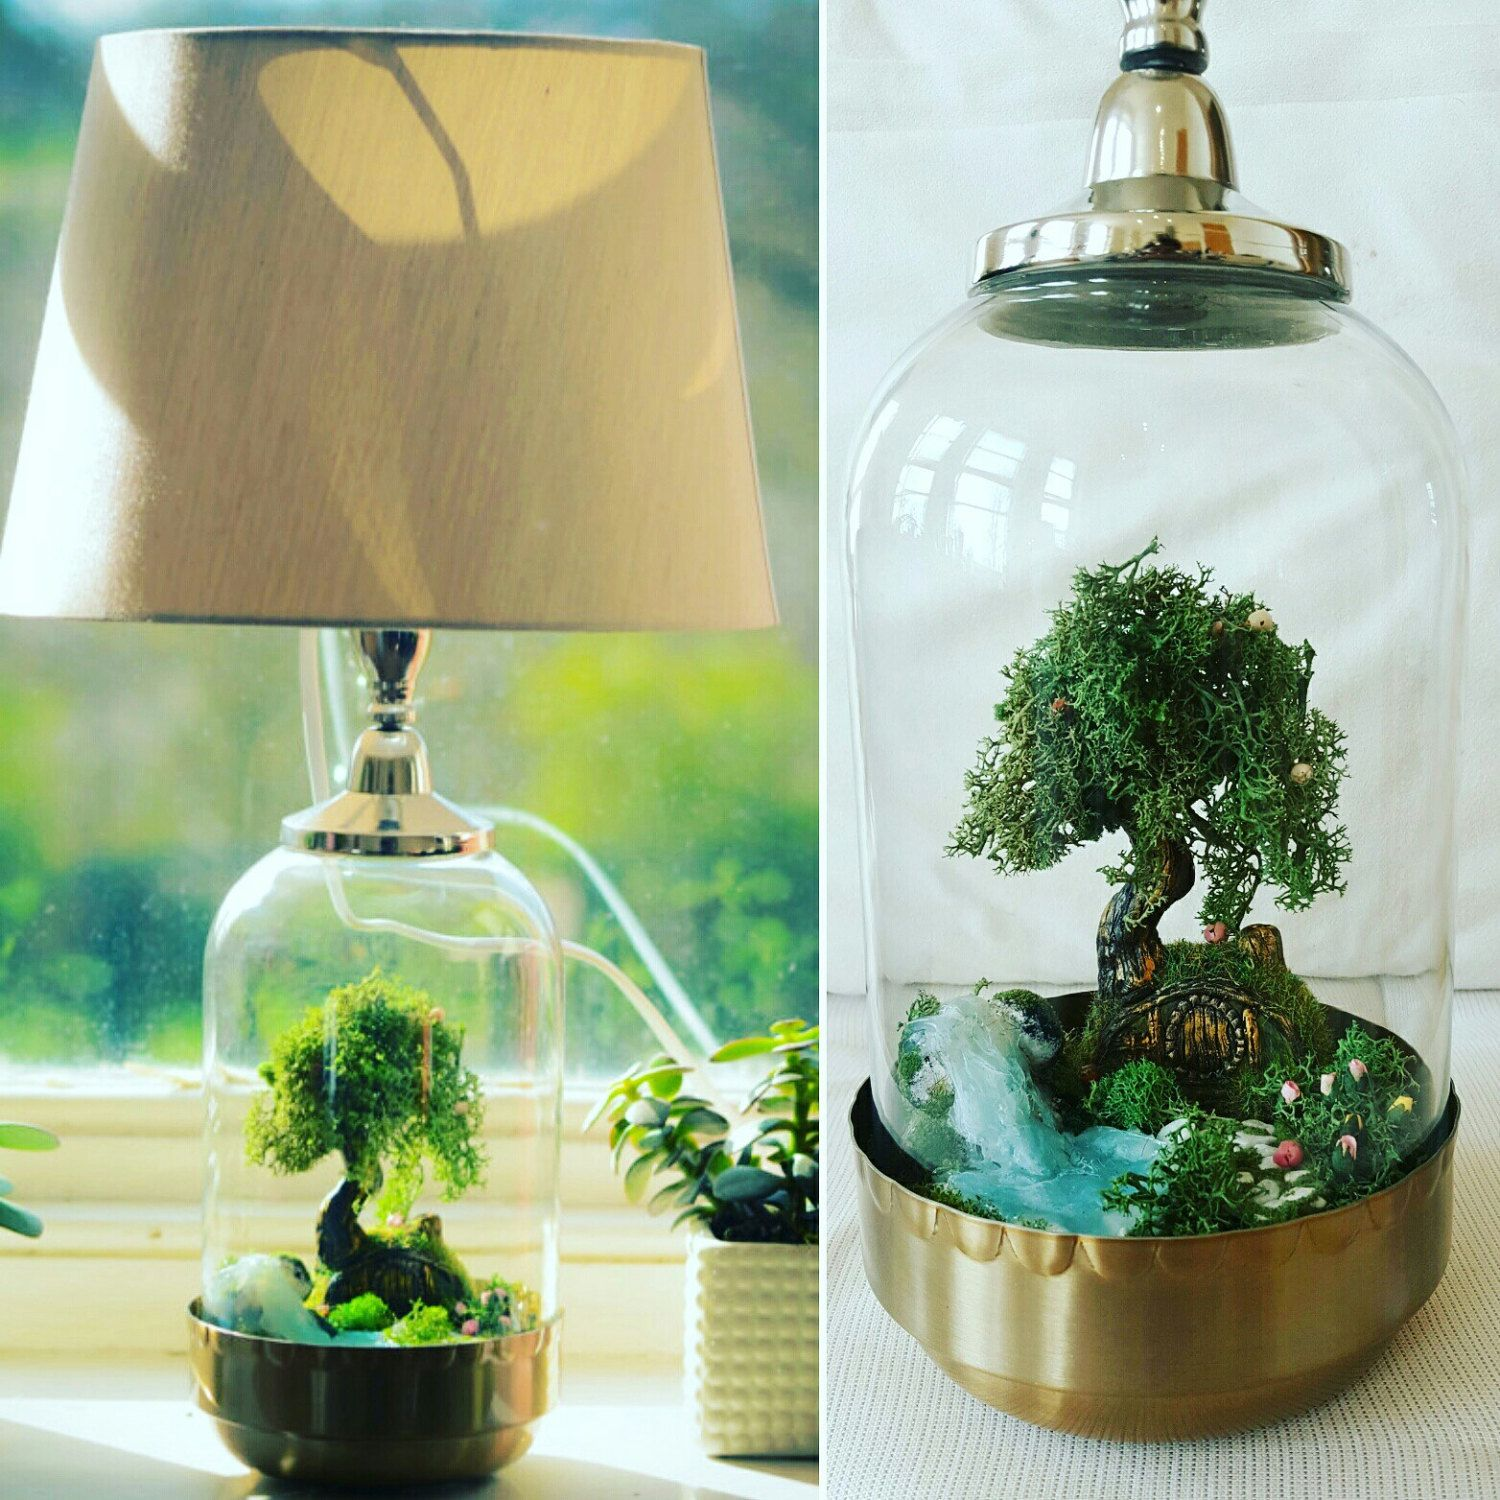 Augurkenpot Lamp Terralamp In 2019 Diy Terrarium Lamp Ideas Terrarium Diy